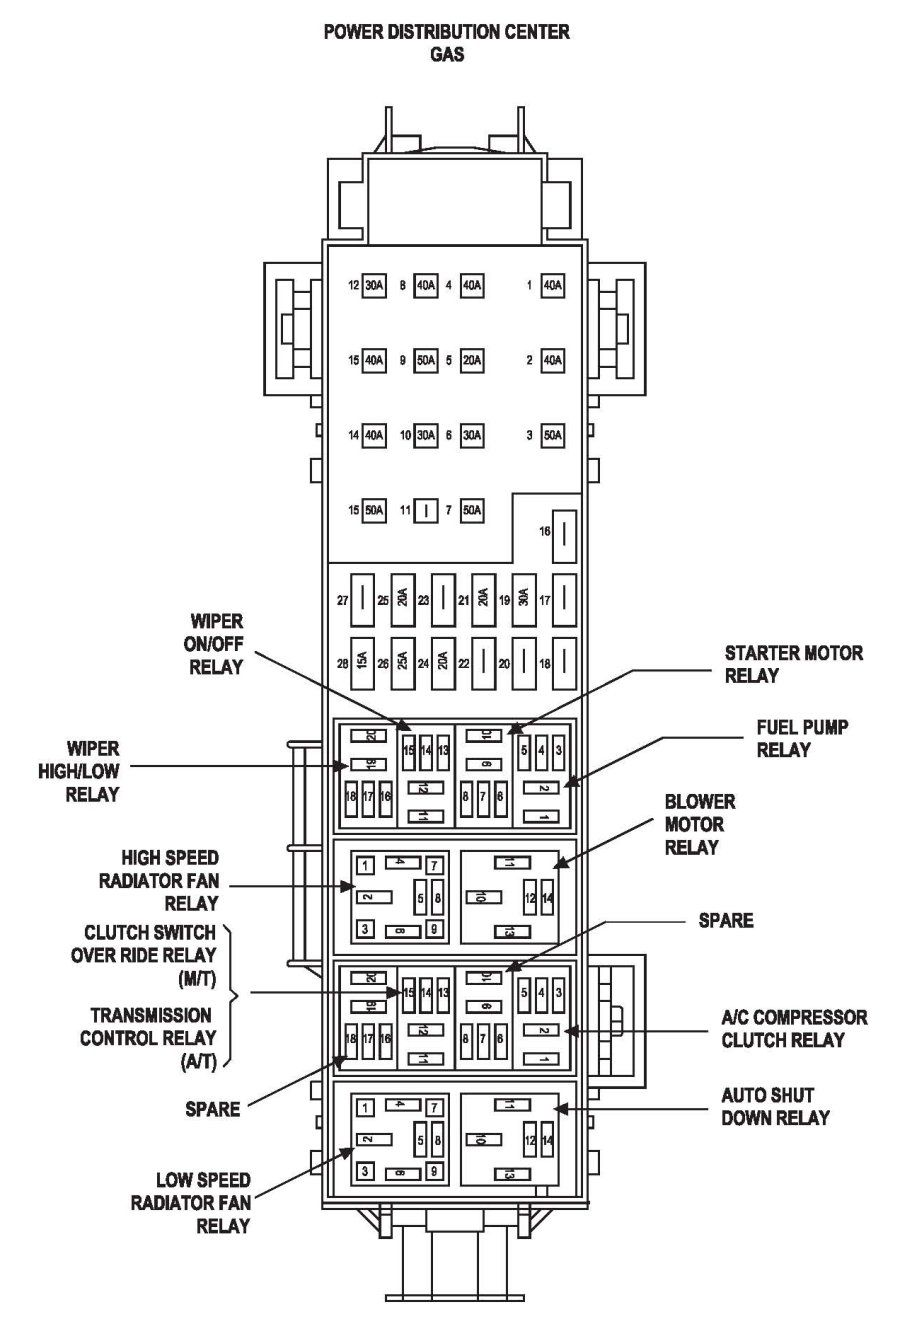 b3536c3739783eb19f827744cc42c3c4 jeep liberty fuse box diagram image details jeep liberty jeep liberty fuse box at mifinder.co